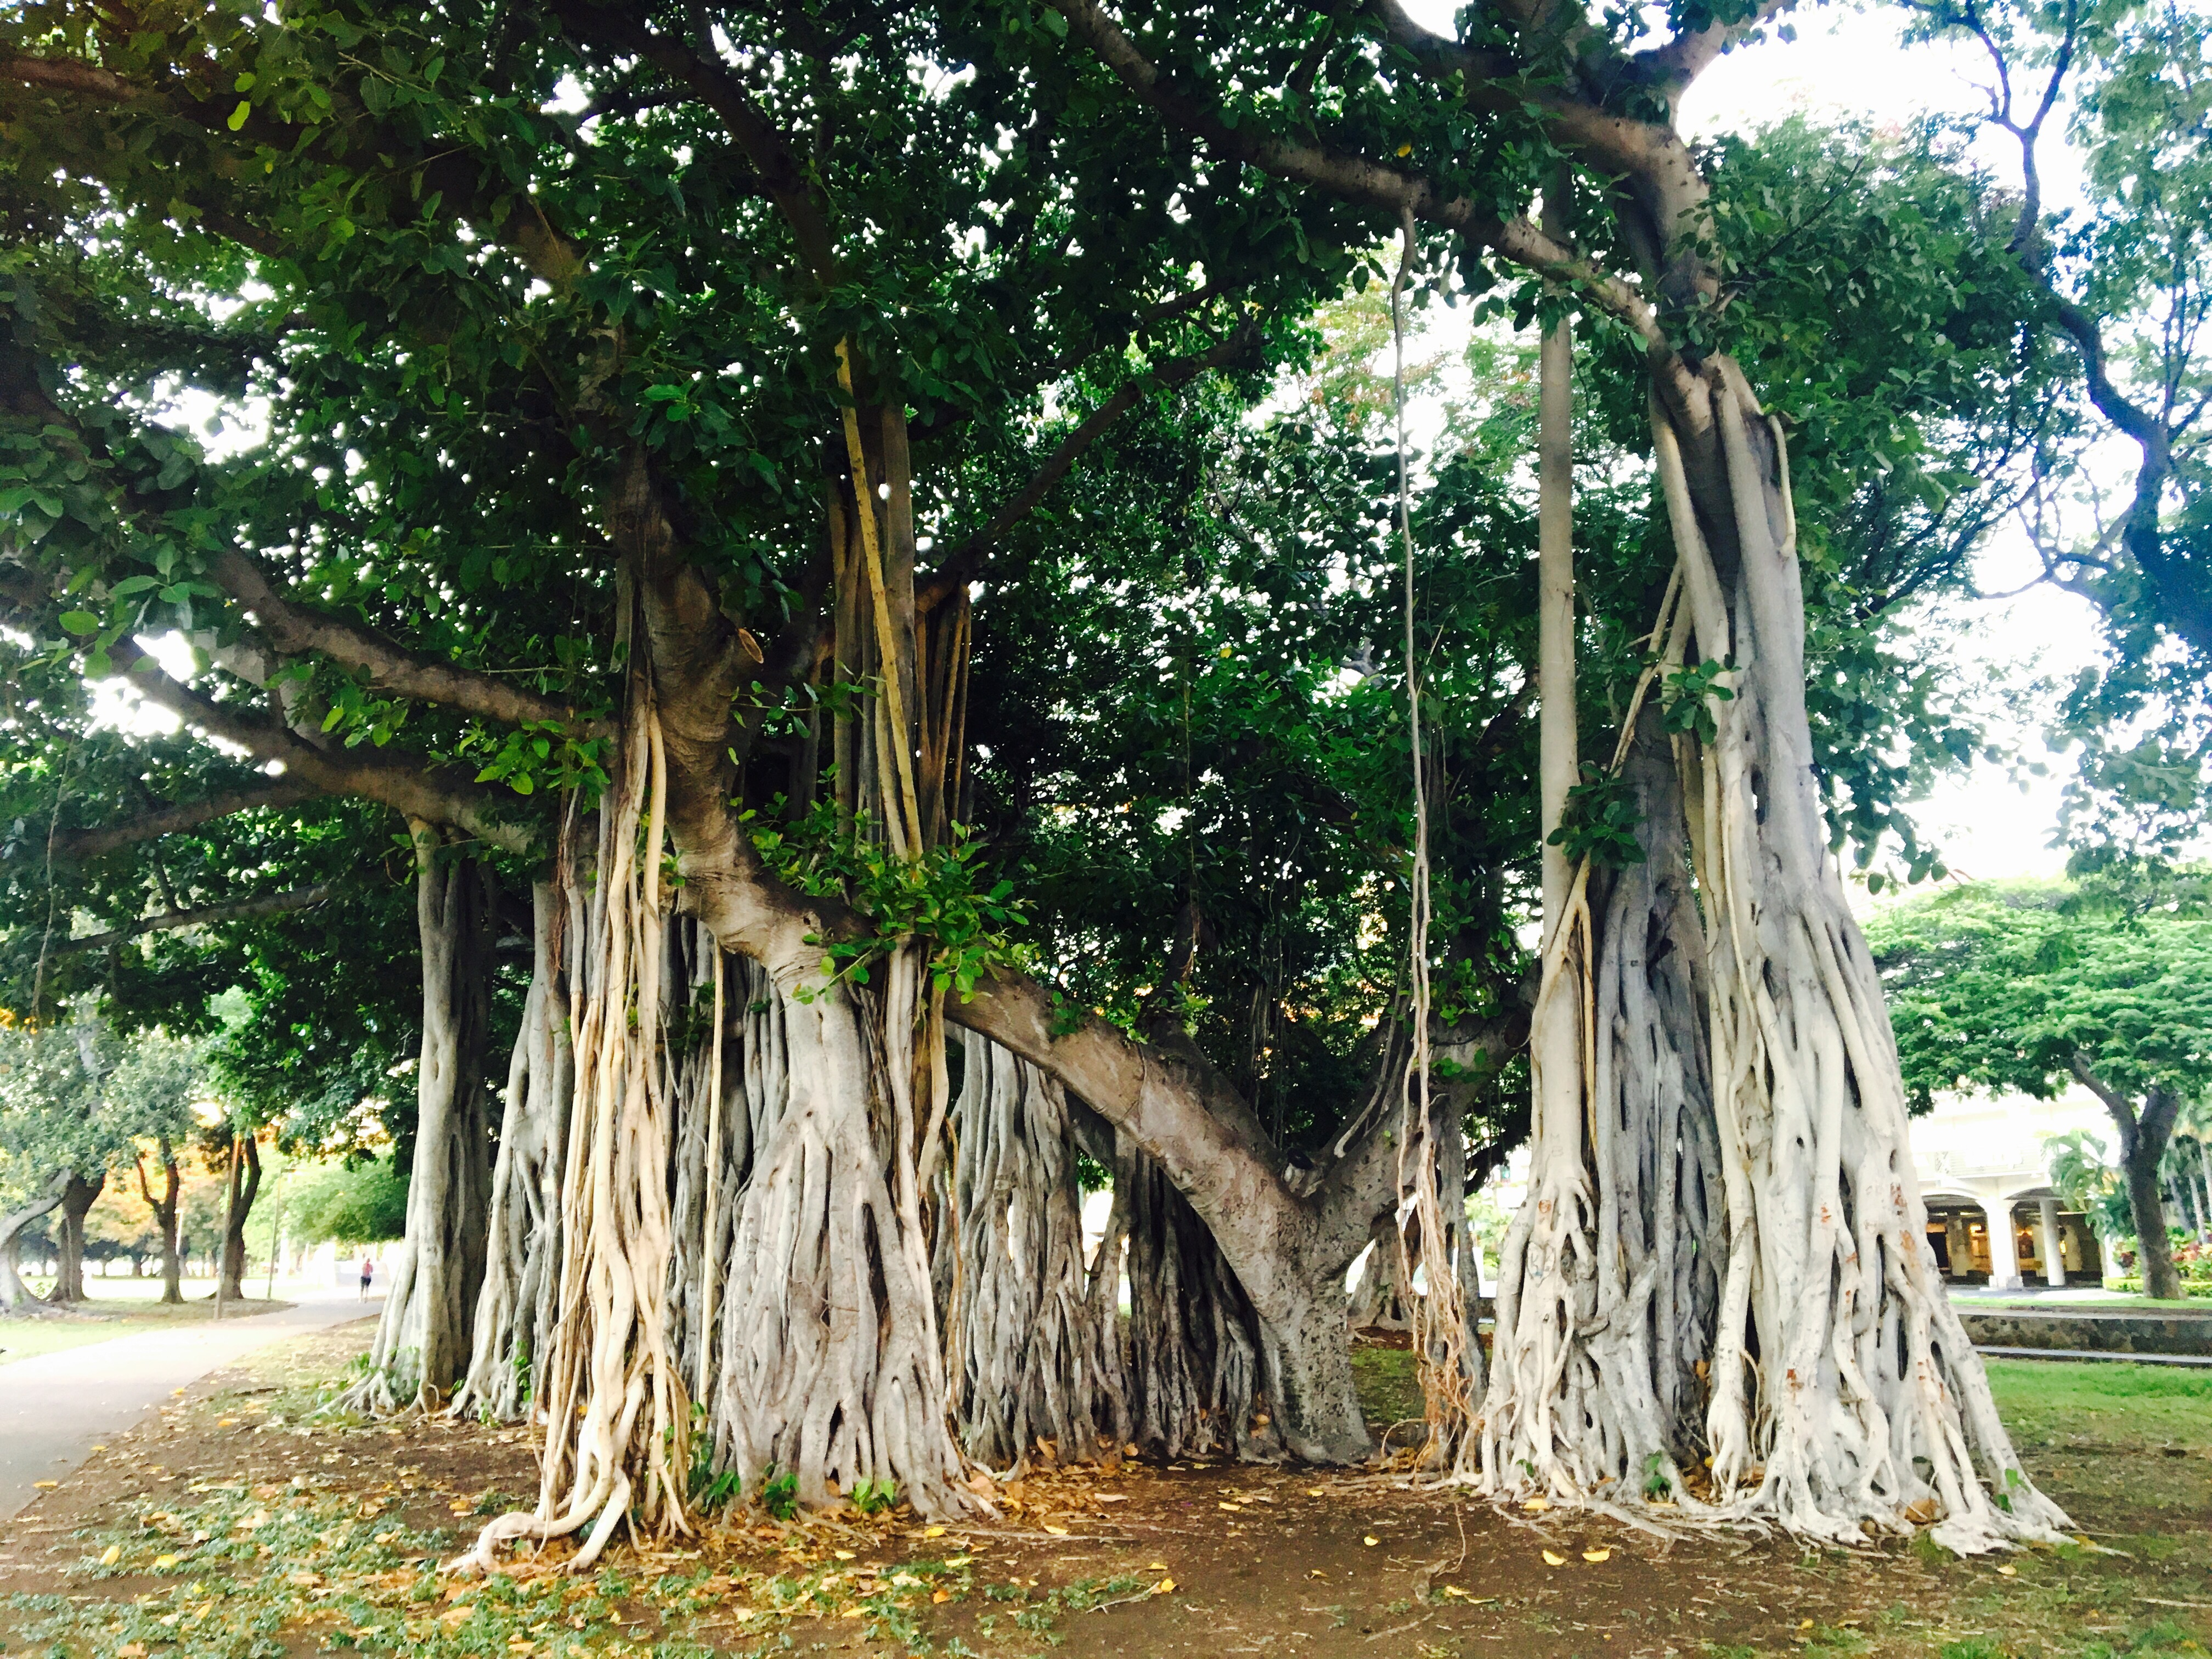 10 Things You Need To Know About Banyan Trees Under The Banyan